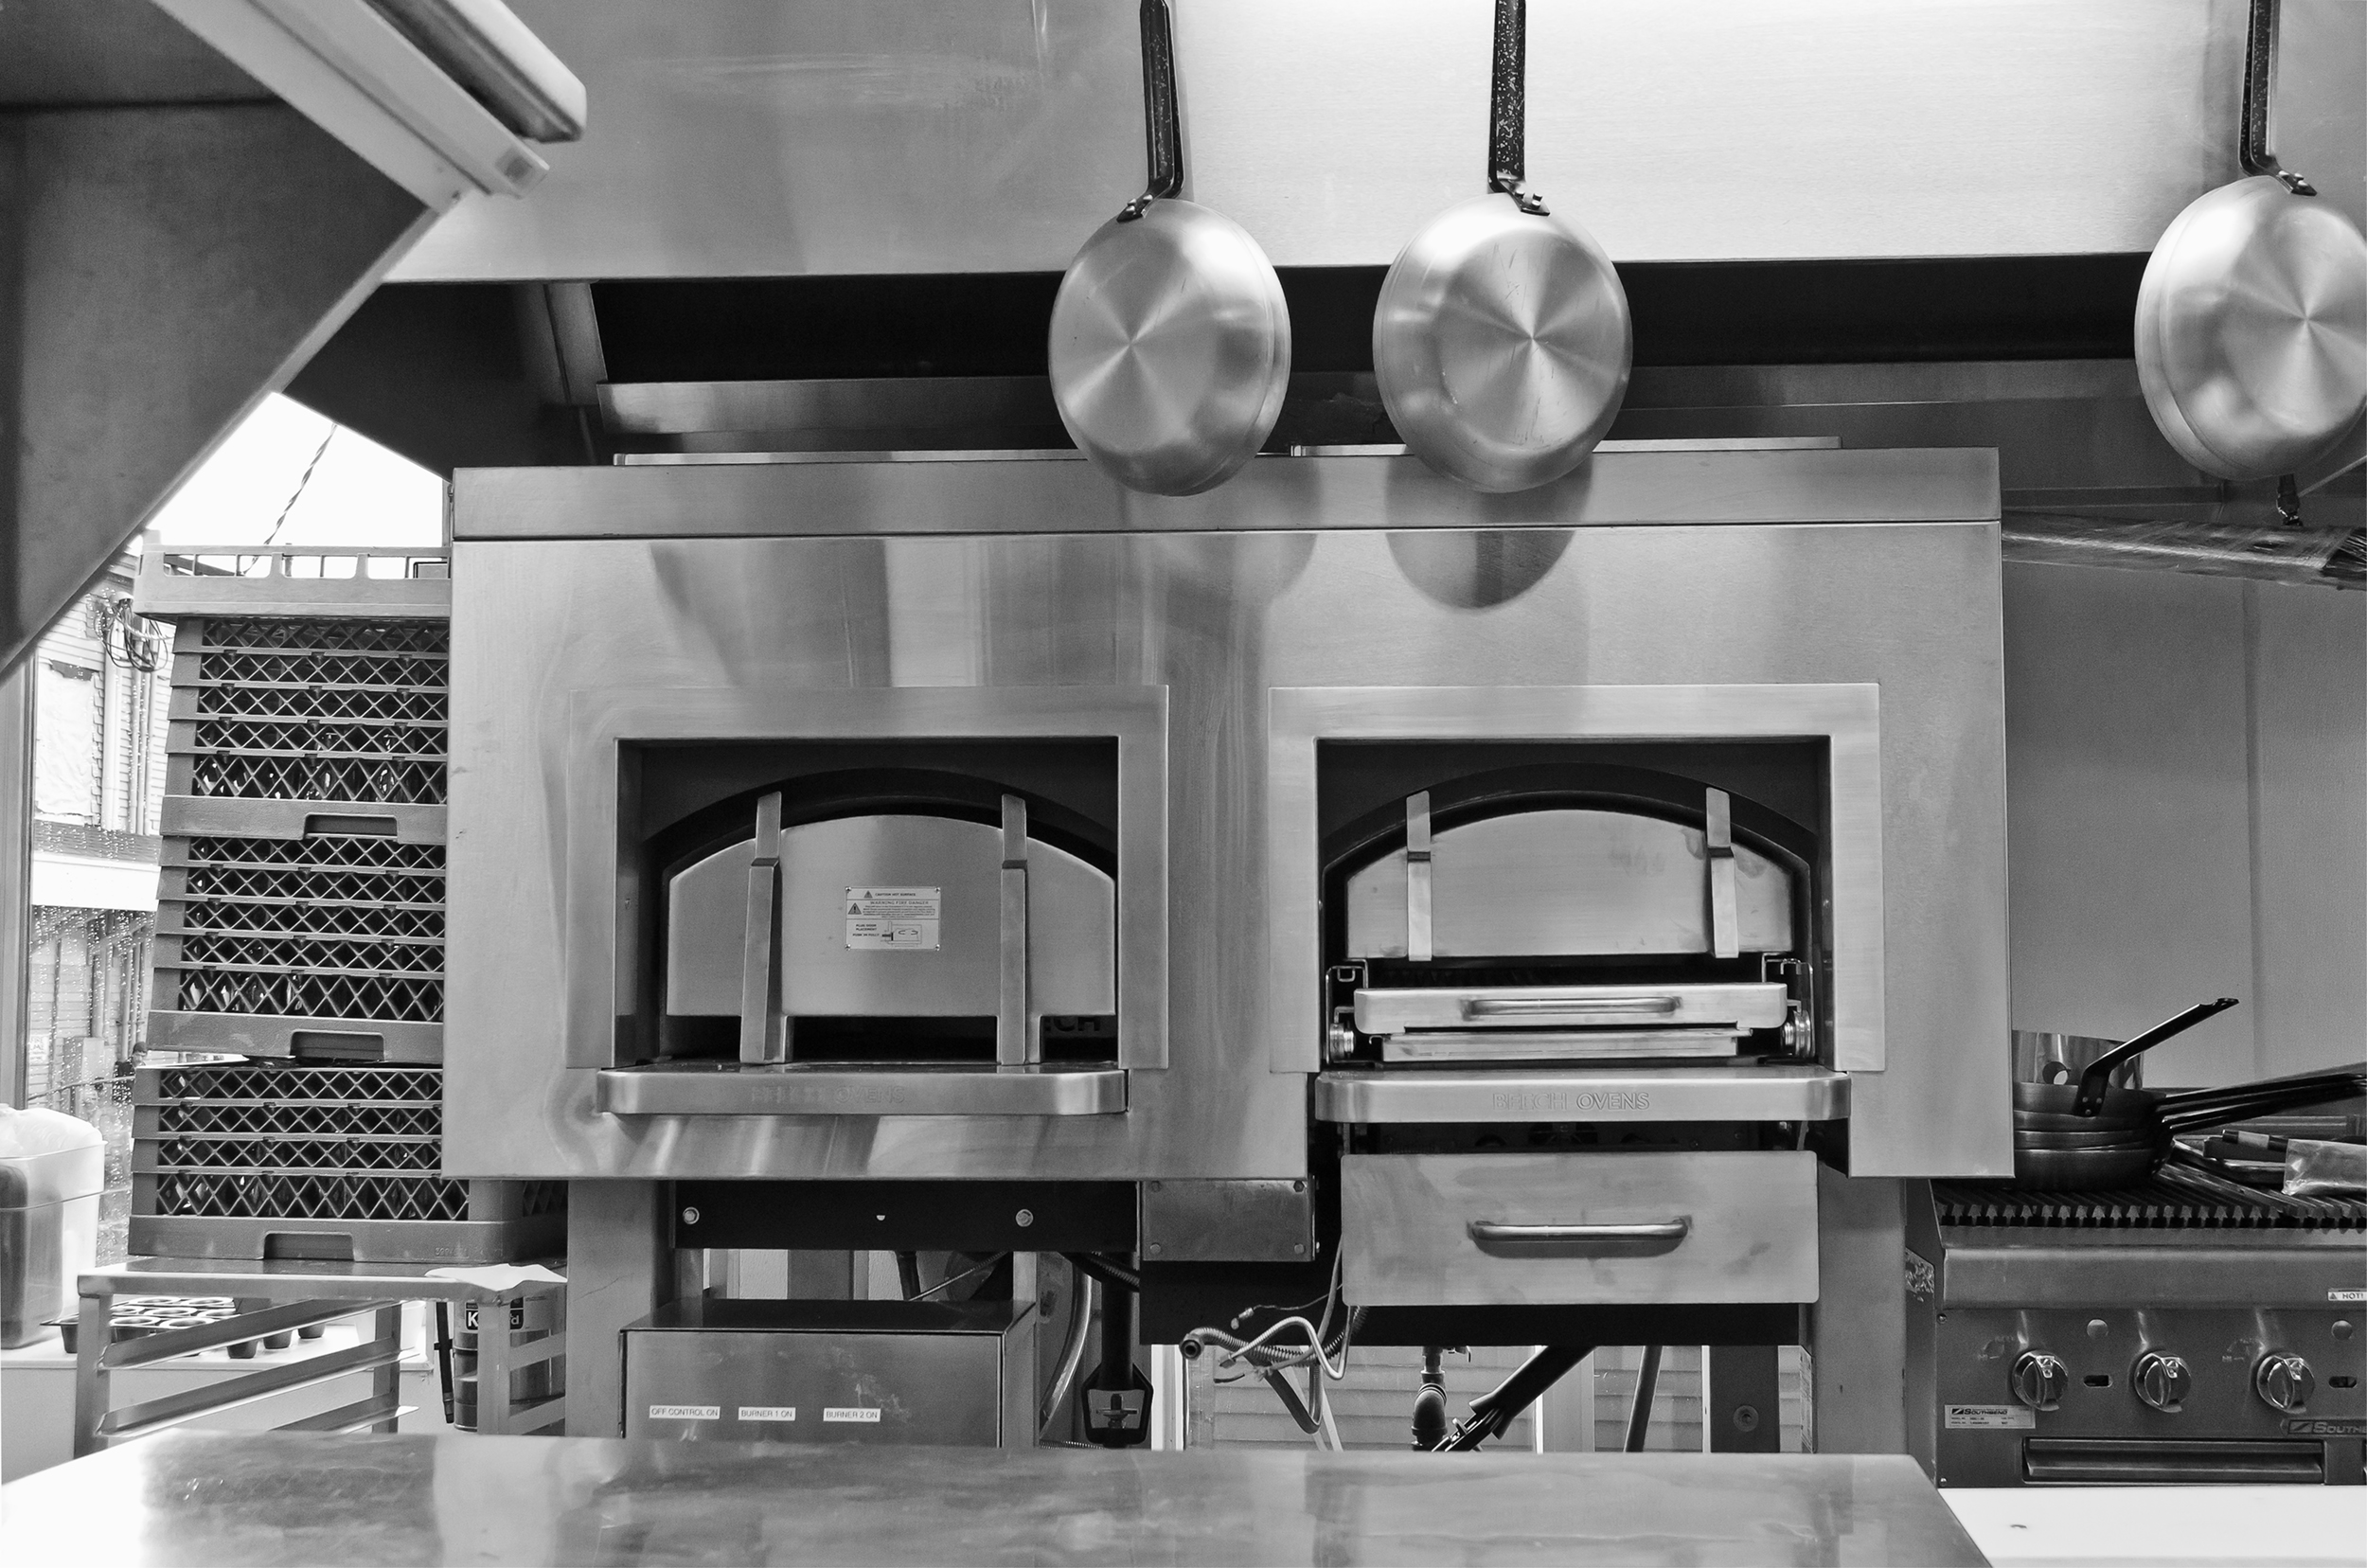 The kitchen at Ebb and Flow, Portland.